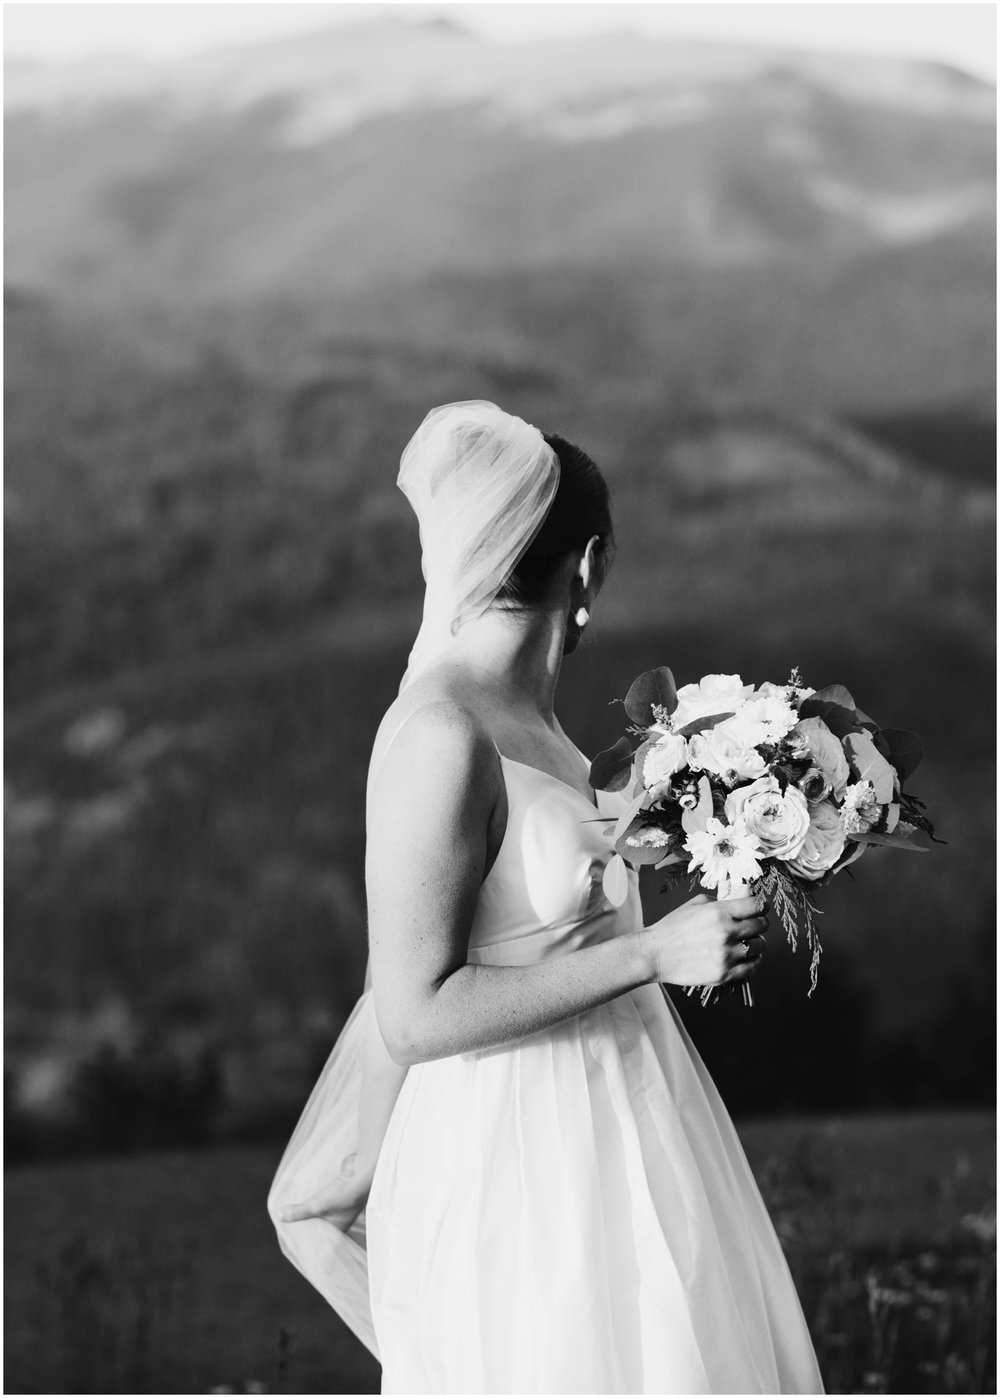 NadegeandJoe_elegant_winter_park_wedding_lodge_at_sunspot_mountain_taylor_powers_0211.jpg